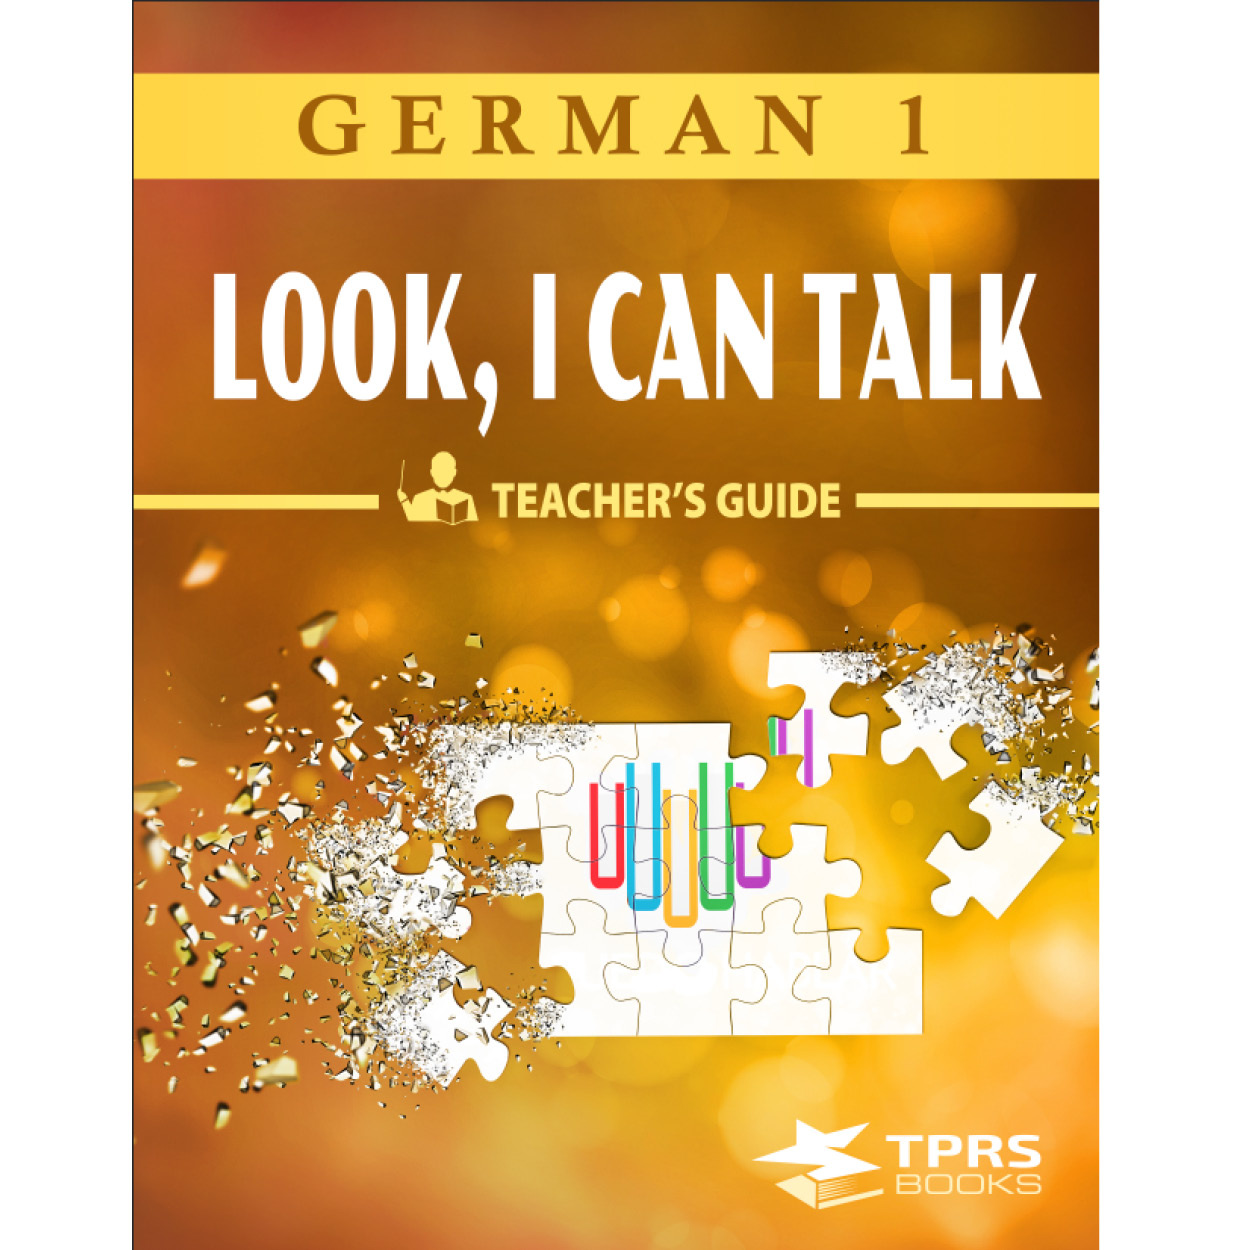 Duits 1 - Look, I can talk! Docentenhandleiding